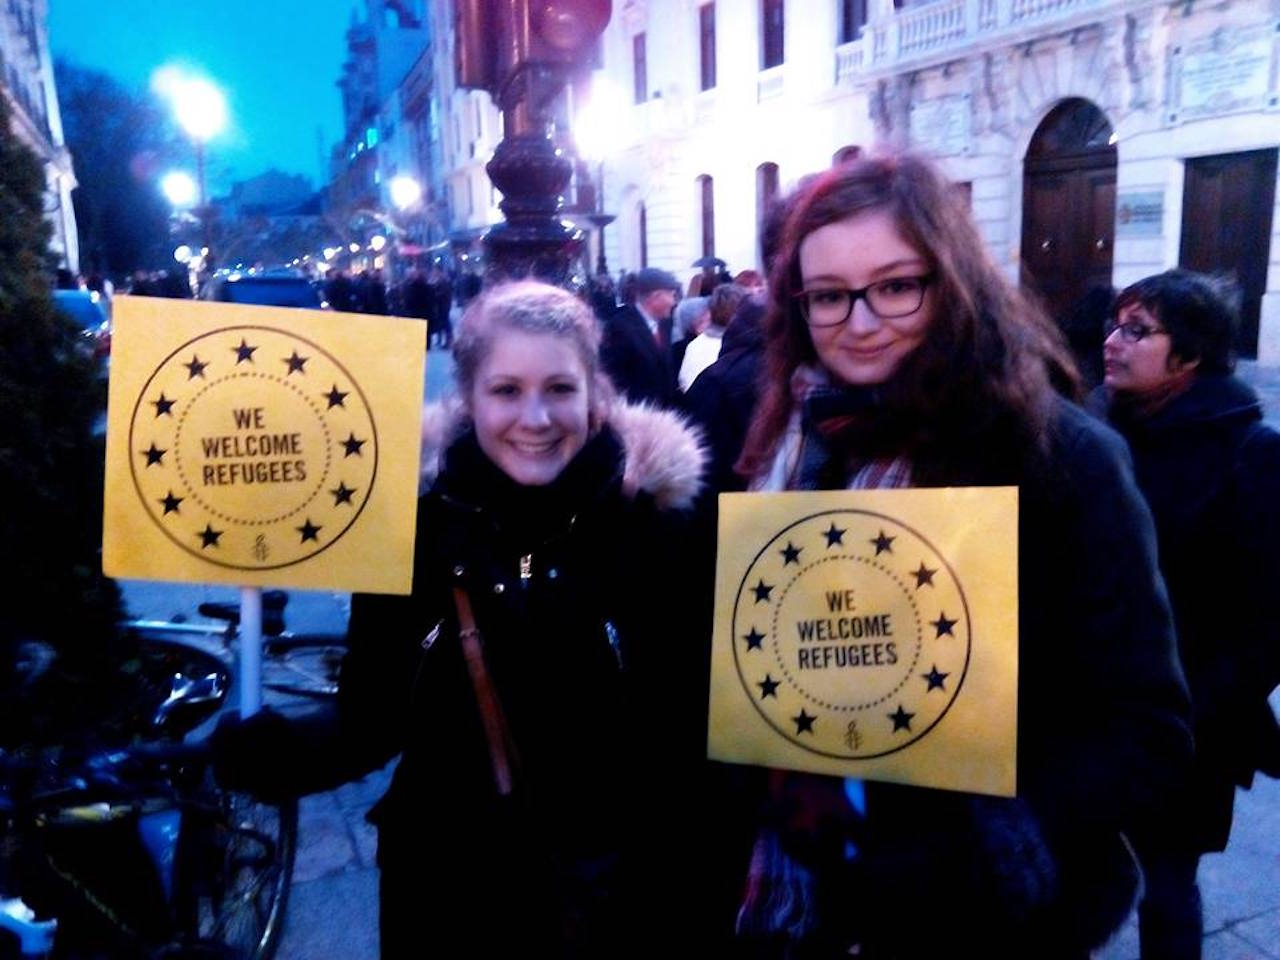 two young women at a march holding signs that say 'we welcome refugees'